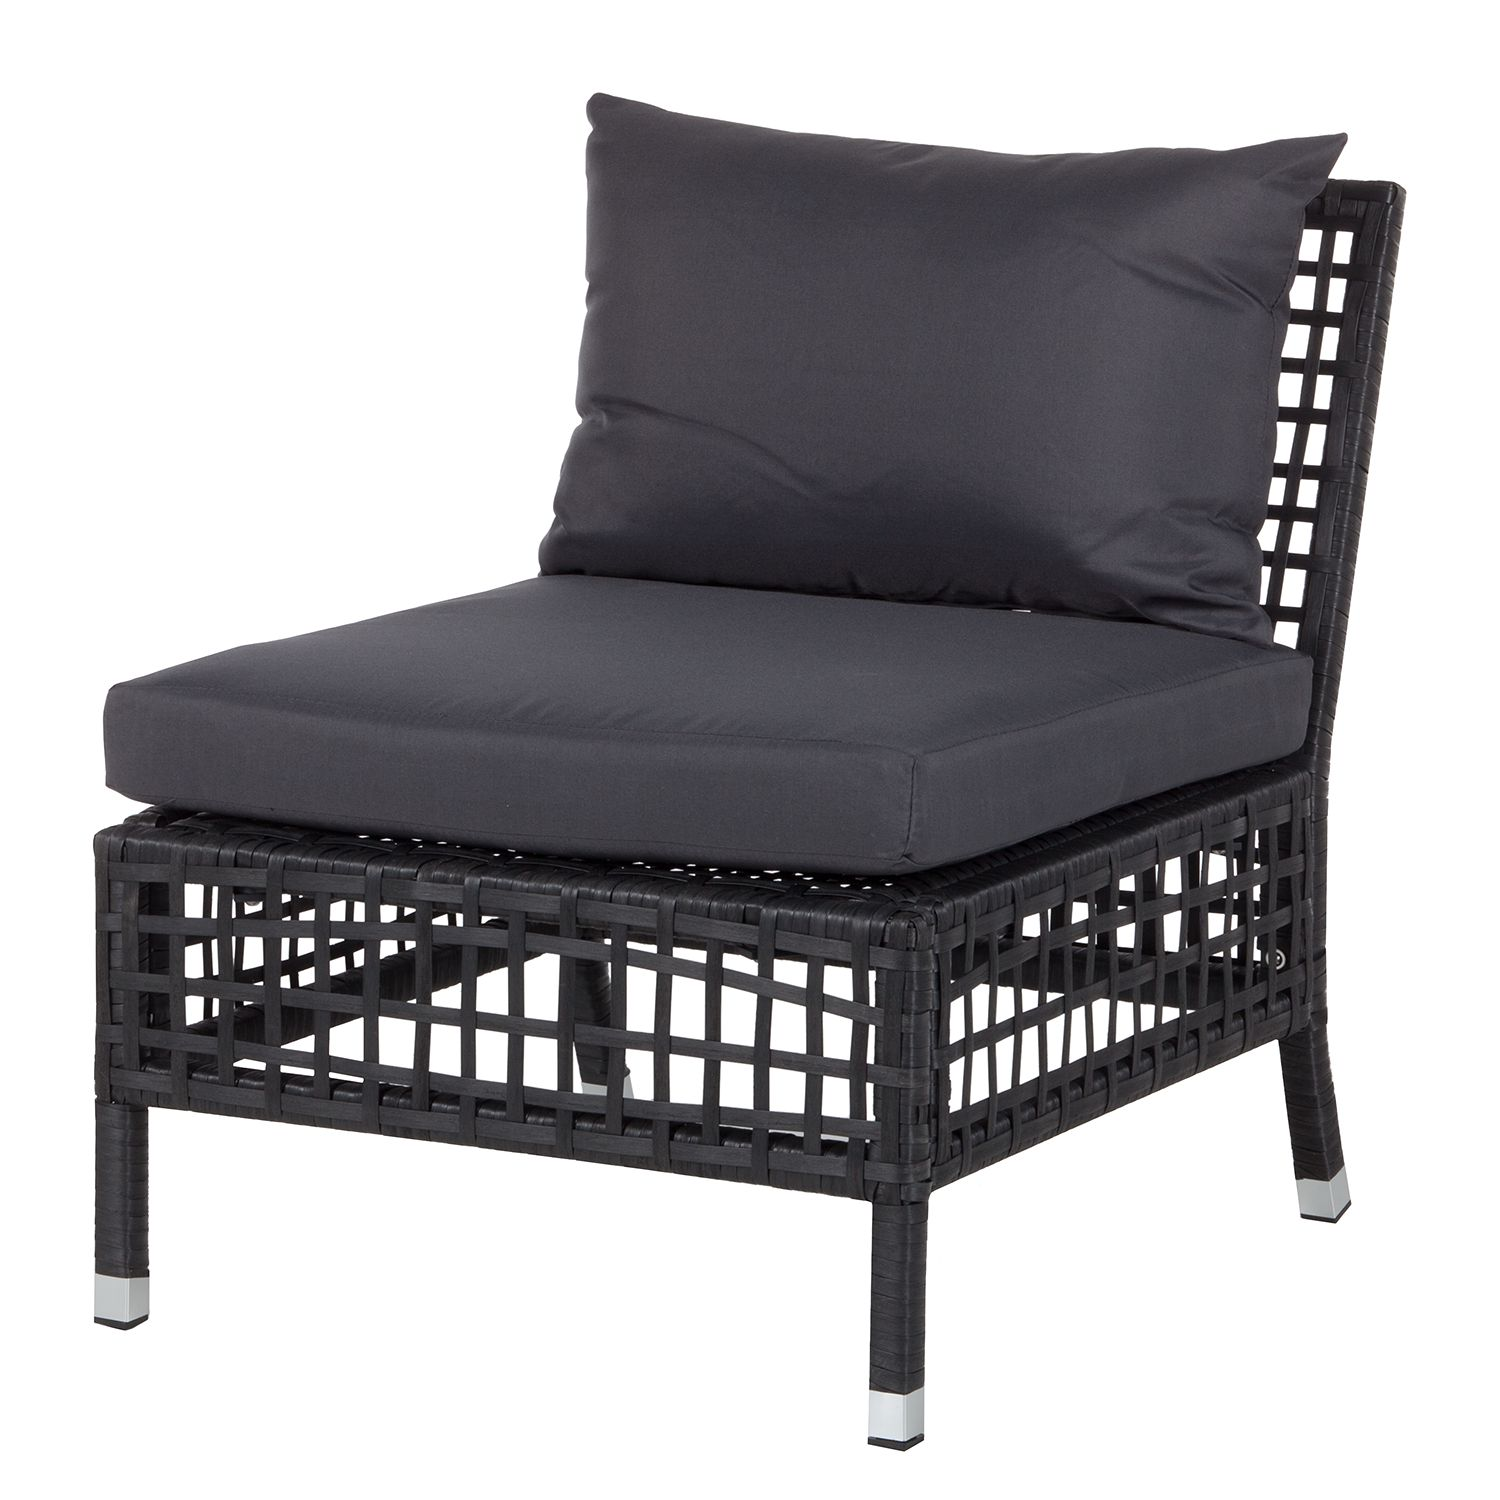 loungesessel nuoro rattan metall anthrazit kings garden online bestellen. Black Bedroom Furniture Sets. Home Design Ideas